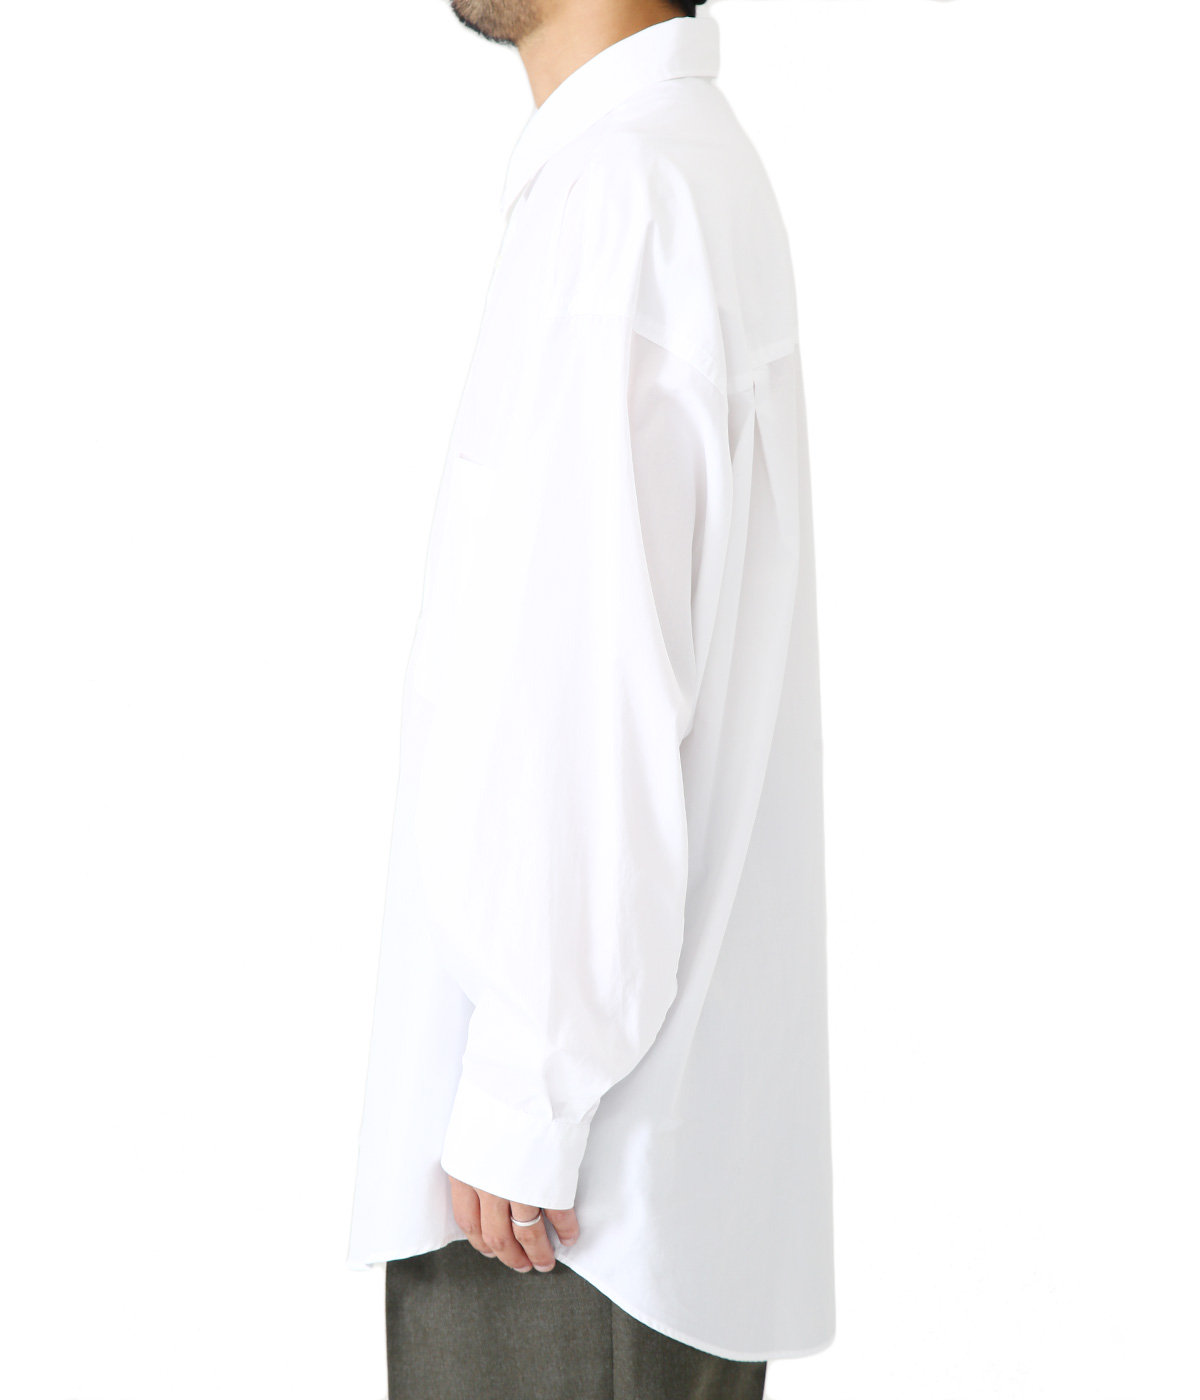 Broad L/S Oversized Regular Collar Shirt